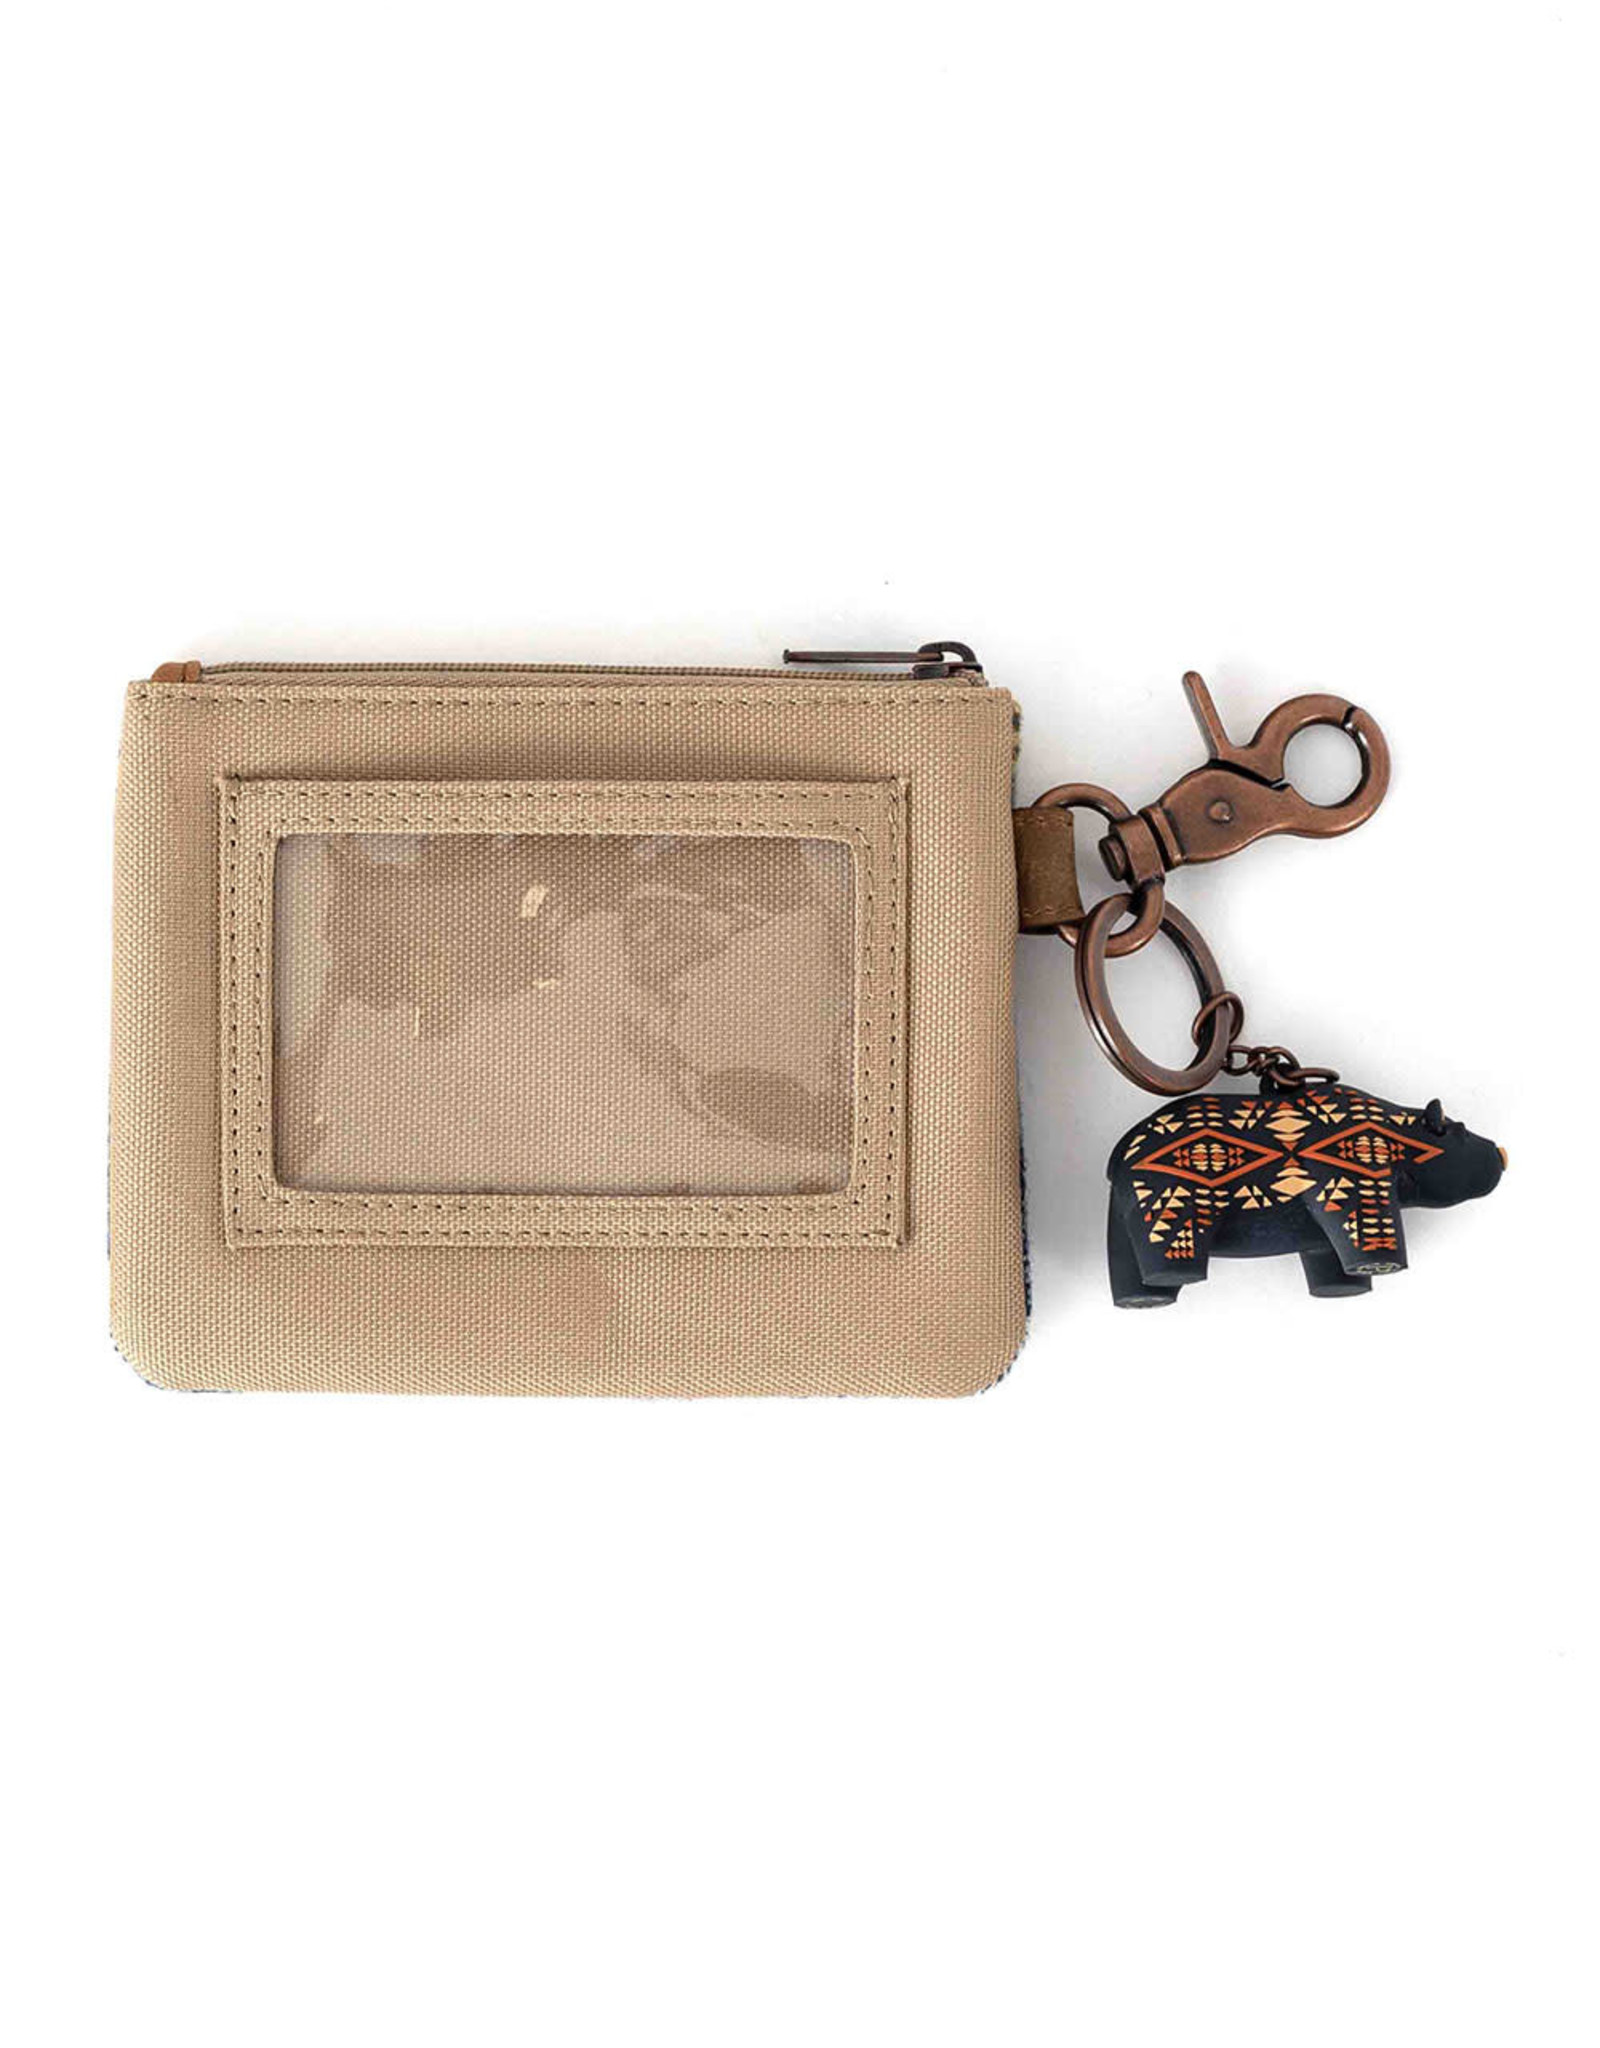 PENDLETON POUCH ID WITH BEAR KEYCHAIN CRESCENT BAY COTTON WOOL